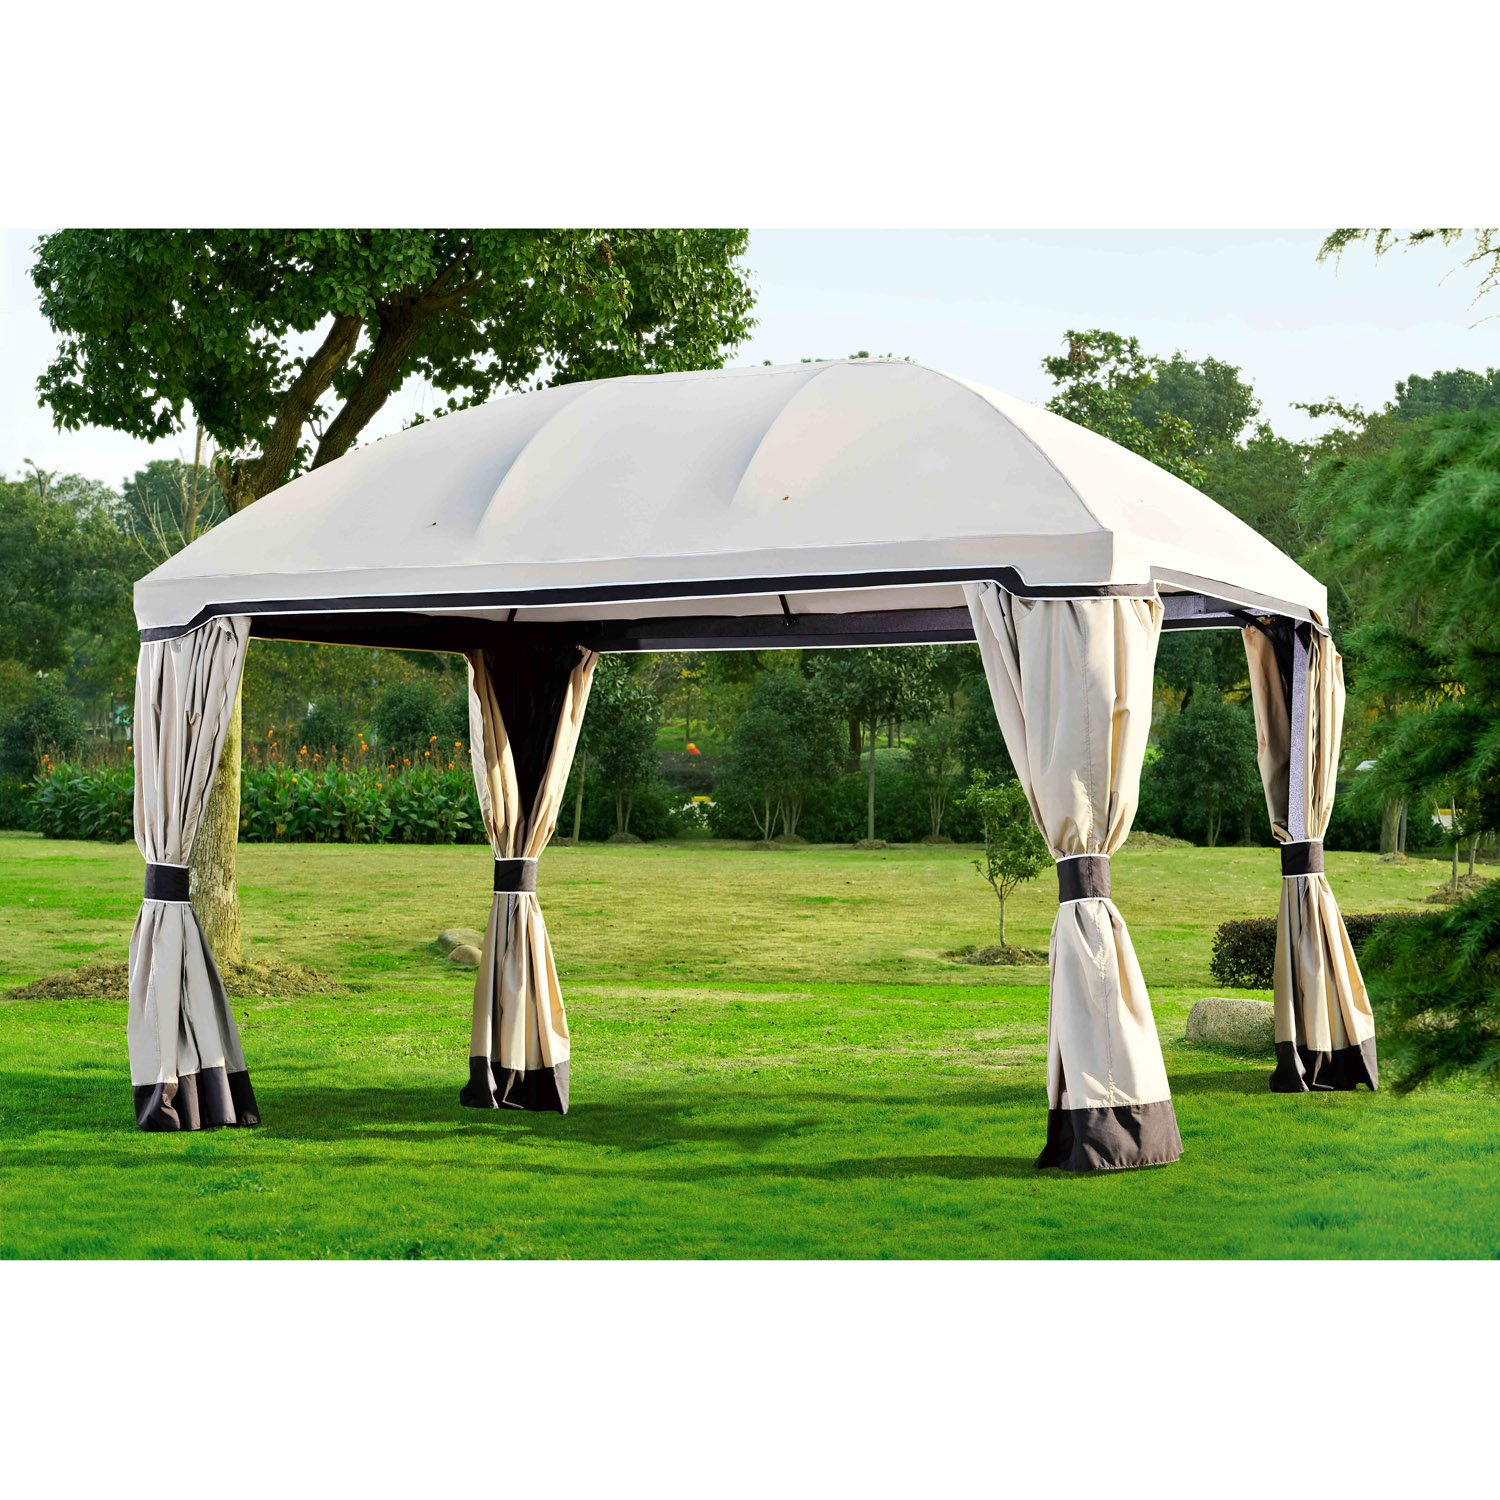 Sunjoy Replacement Canopy for 10x13ft Pomeroy Domed Top Gazebo